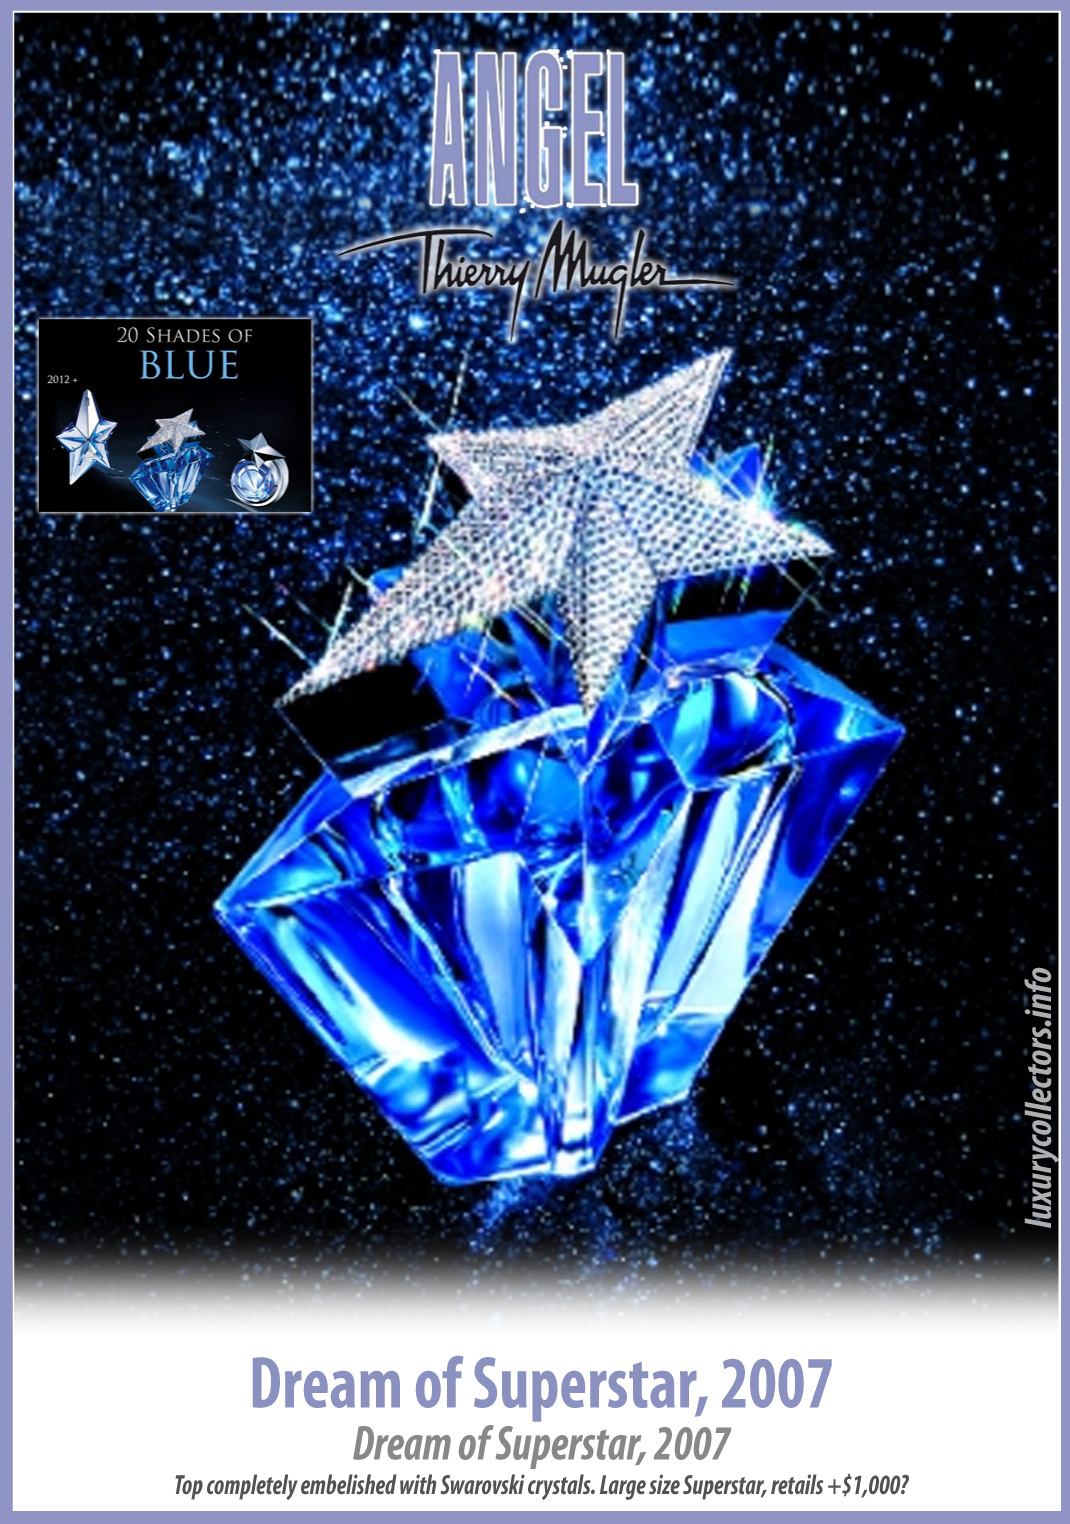 Thierry Mugler Angel 20 Years Perfume Collector's Limited Edition Bottle 2007 Superstar Deluxe Dream of Swarovski Factice Perfume Bottle Collecting 15th anniversary